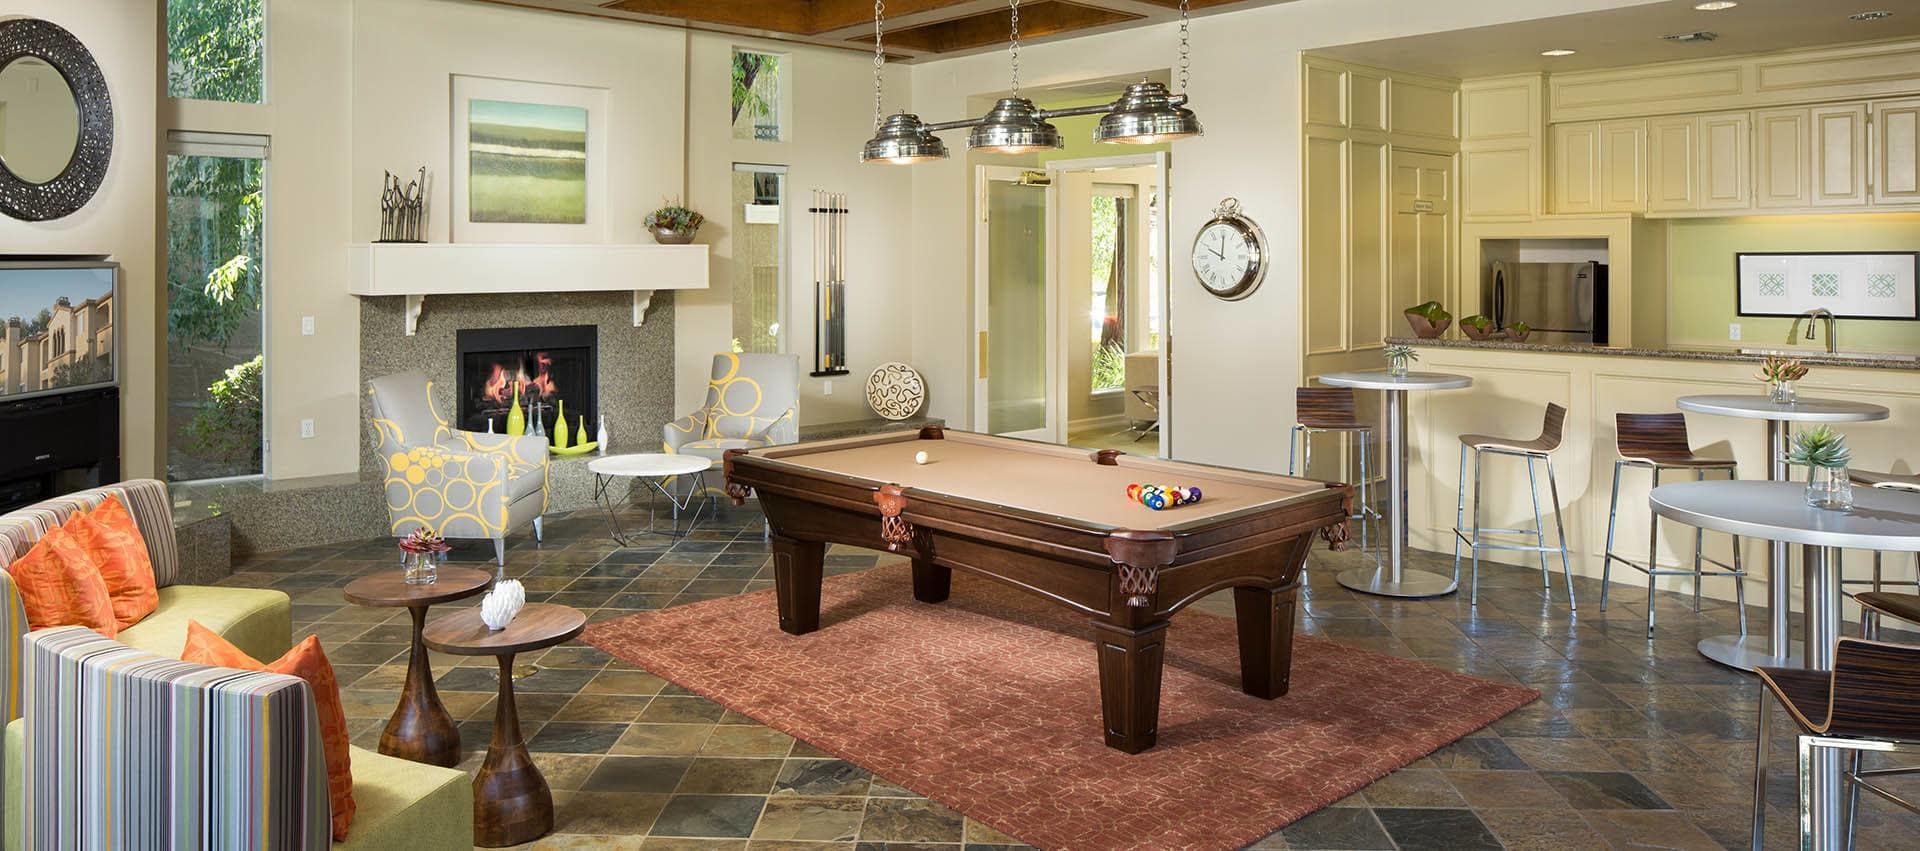 Pool Table In Clubhouse in Alize at Aliso Viejo Apartment Homes in Aliso Viejo, California